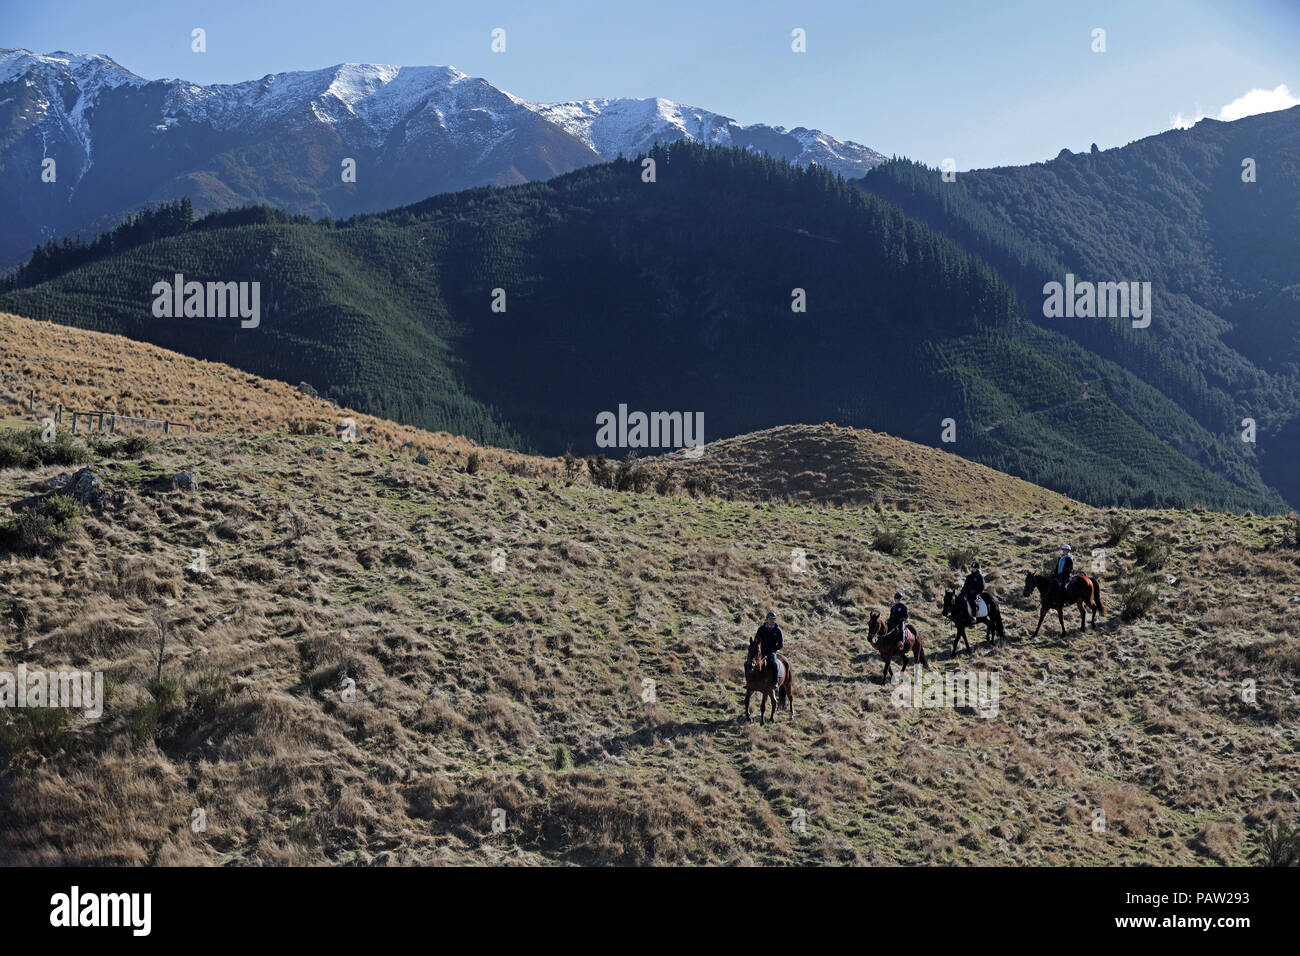 Picture by Tim Cuff - 17 July 2018 - Travel feature on the thermal spa resort of Hanmer Springs, Hurunui District, New Zealand: horse trekking - Stock Image